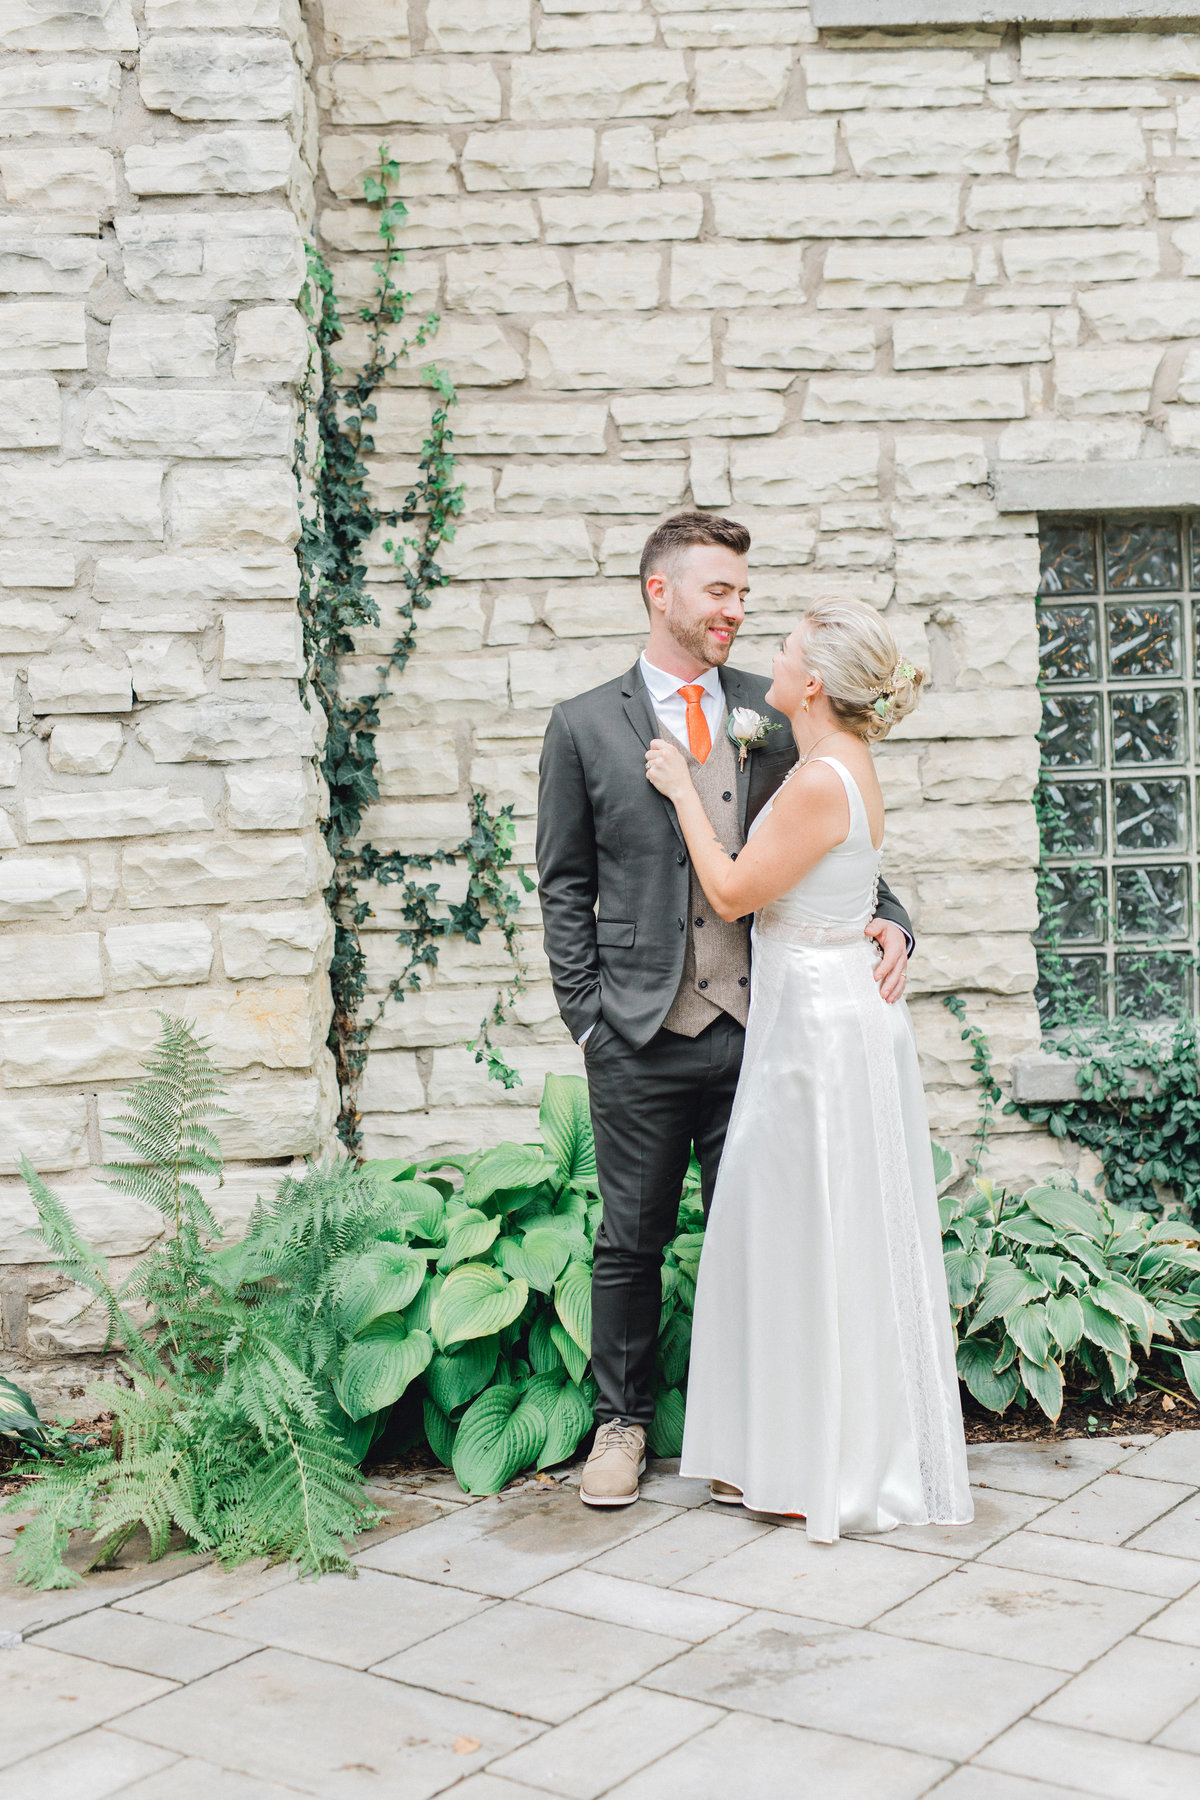 Ned-Ashton-House-Wedding-Ellen+Mack-4149